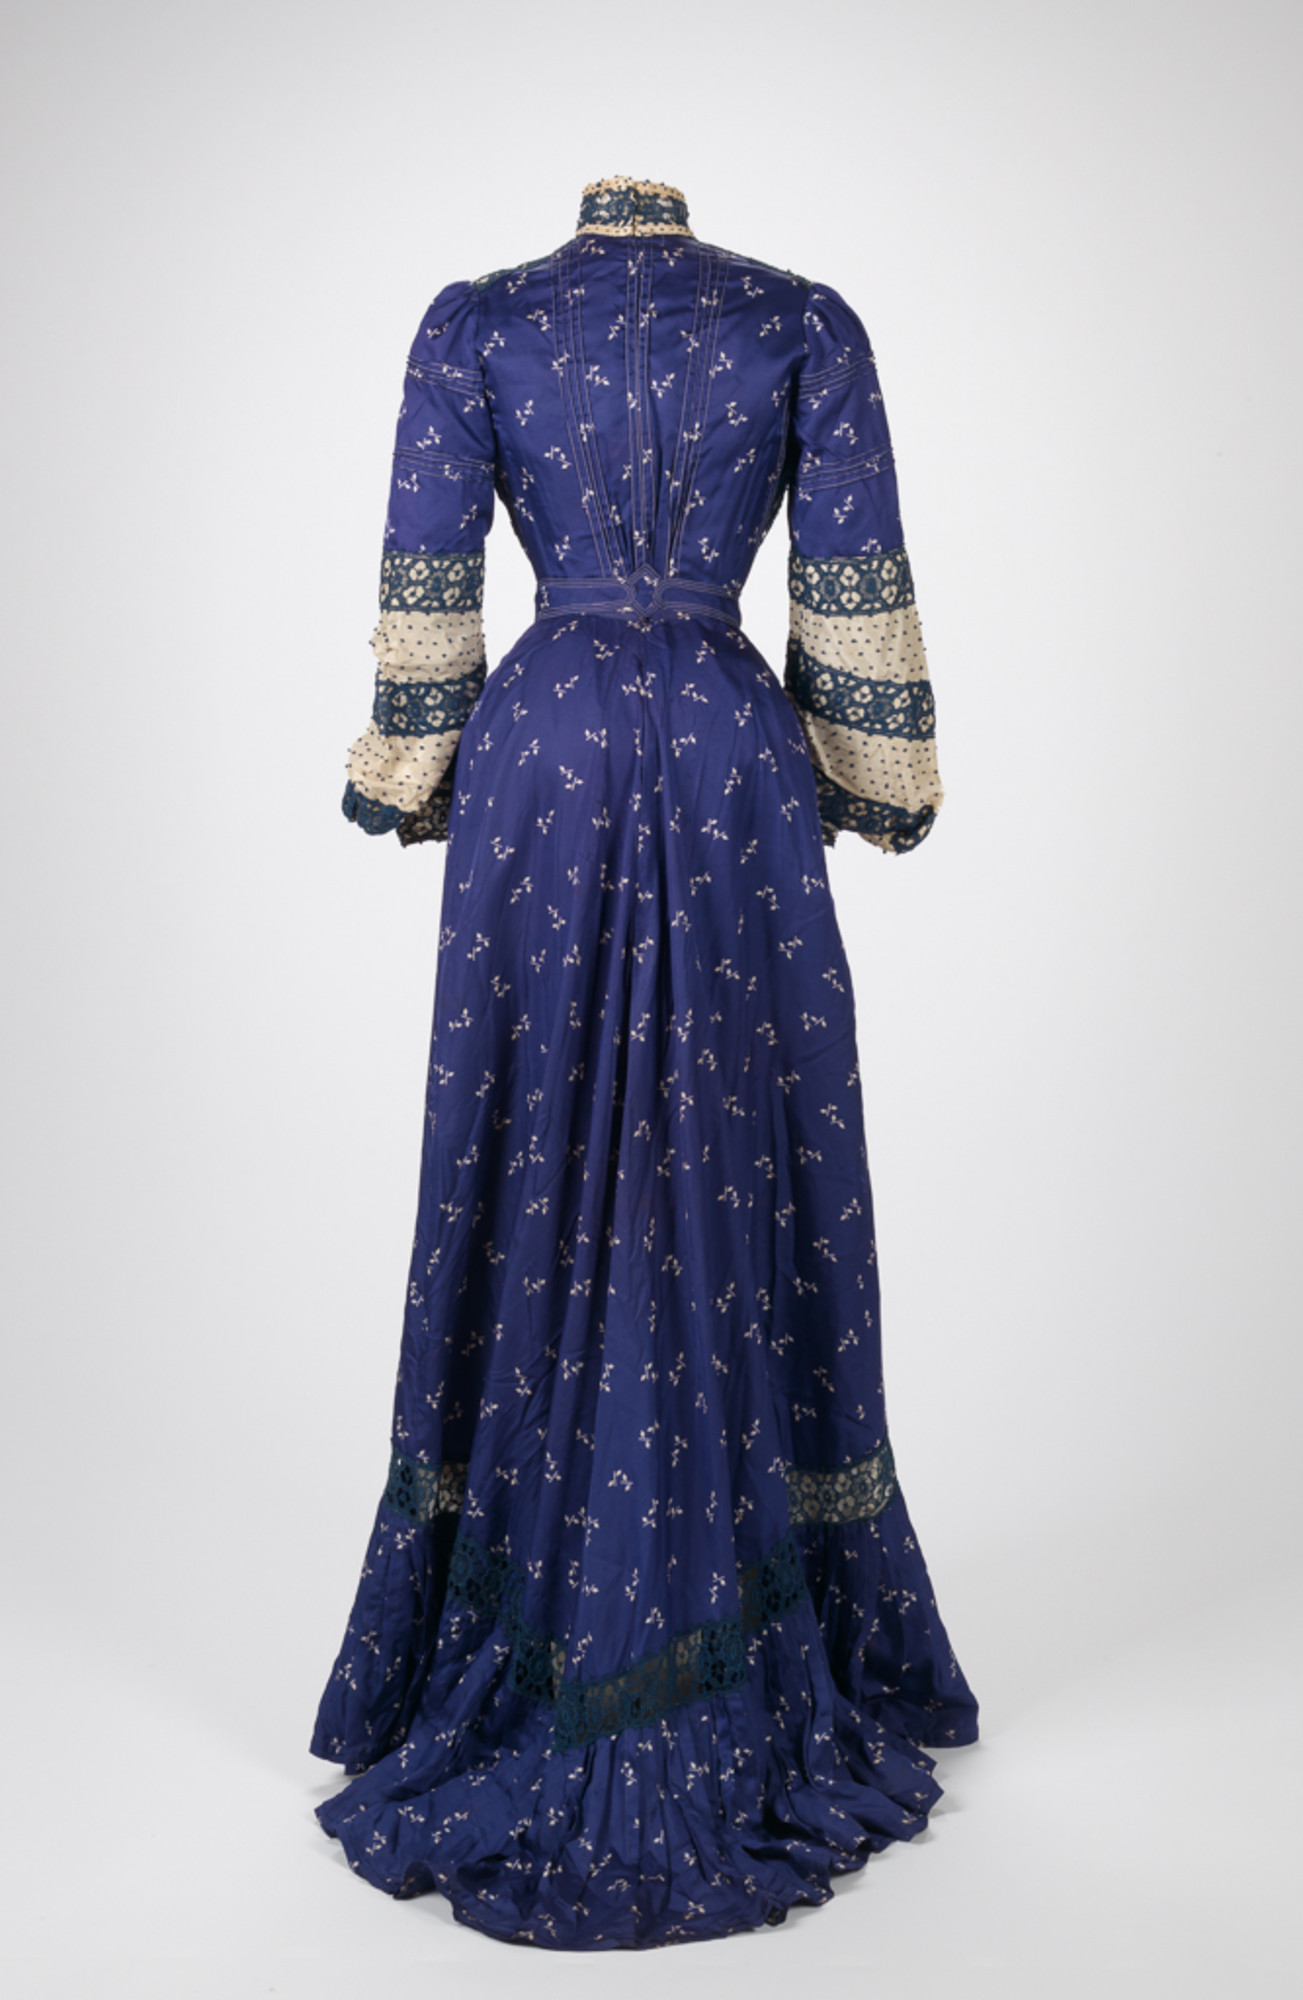 1900s day dress, 1900s fashion